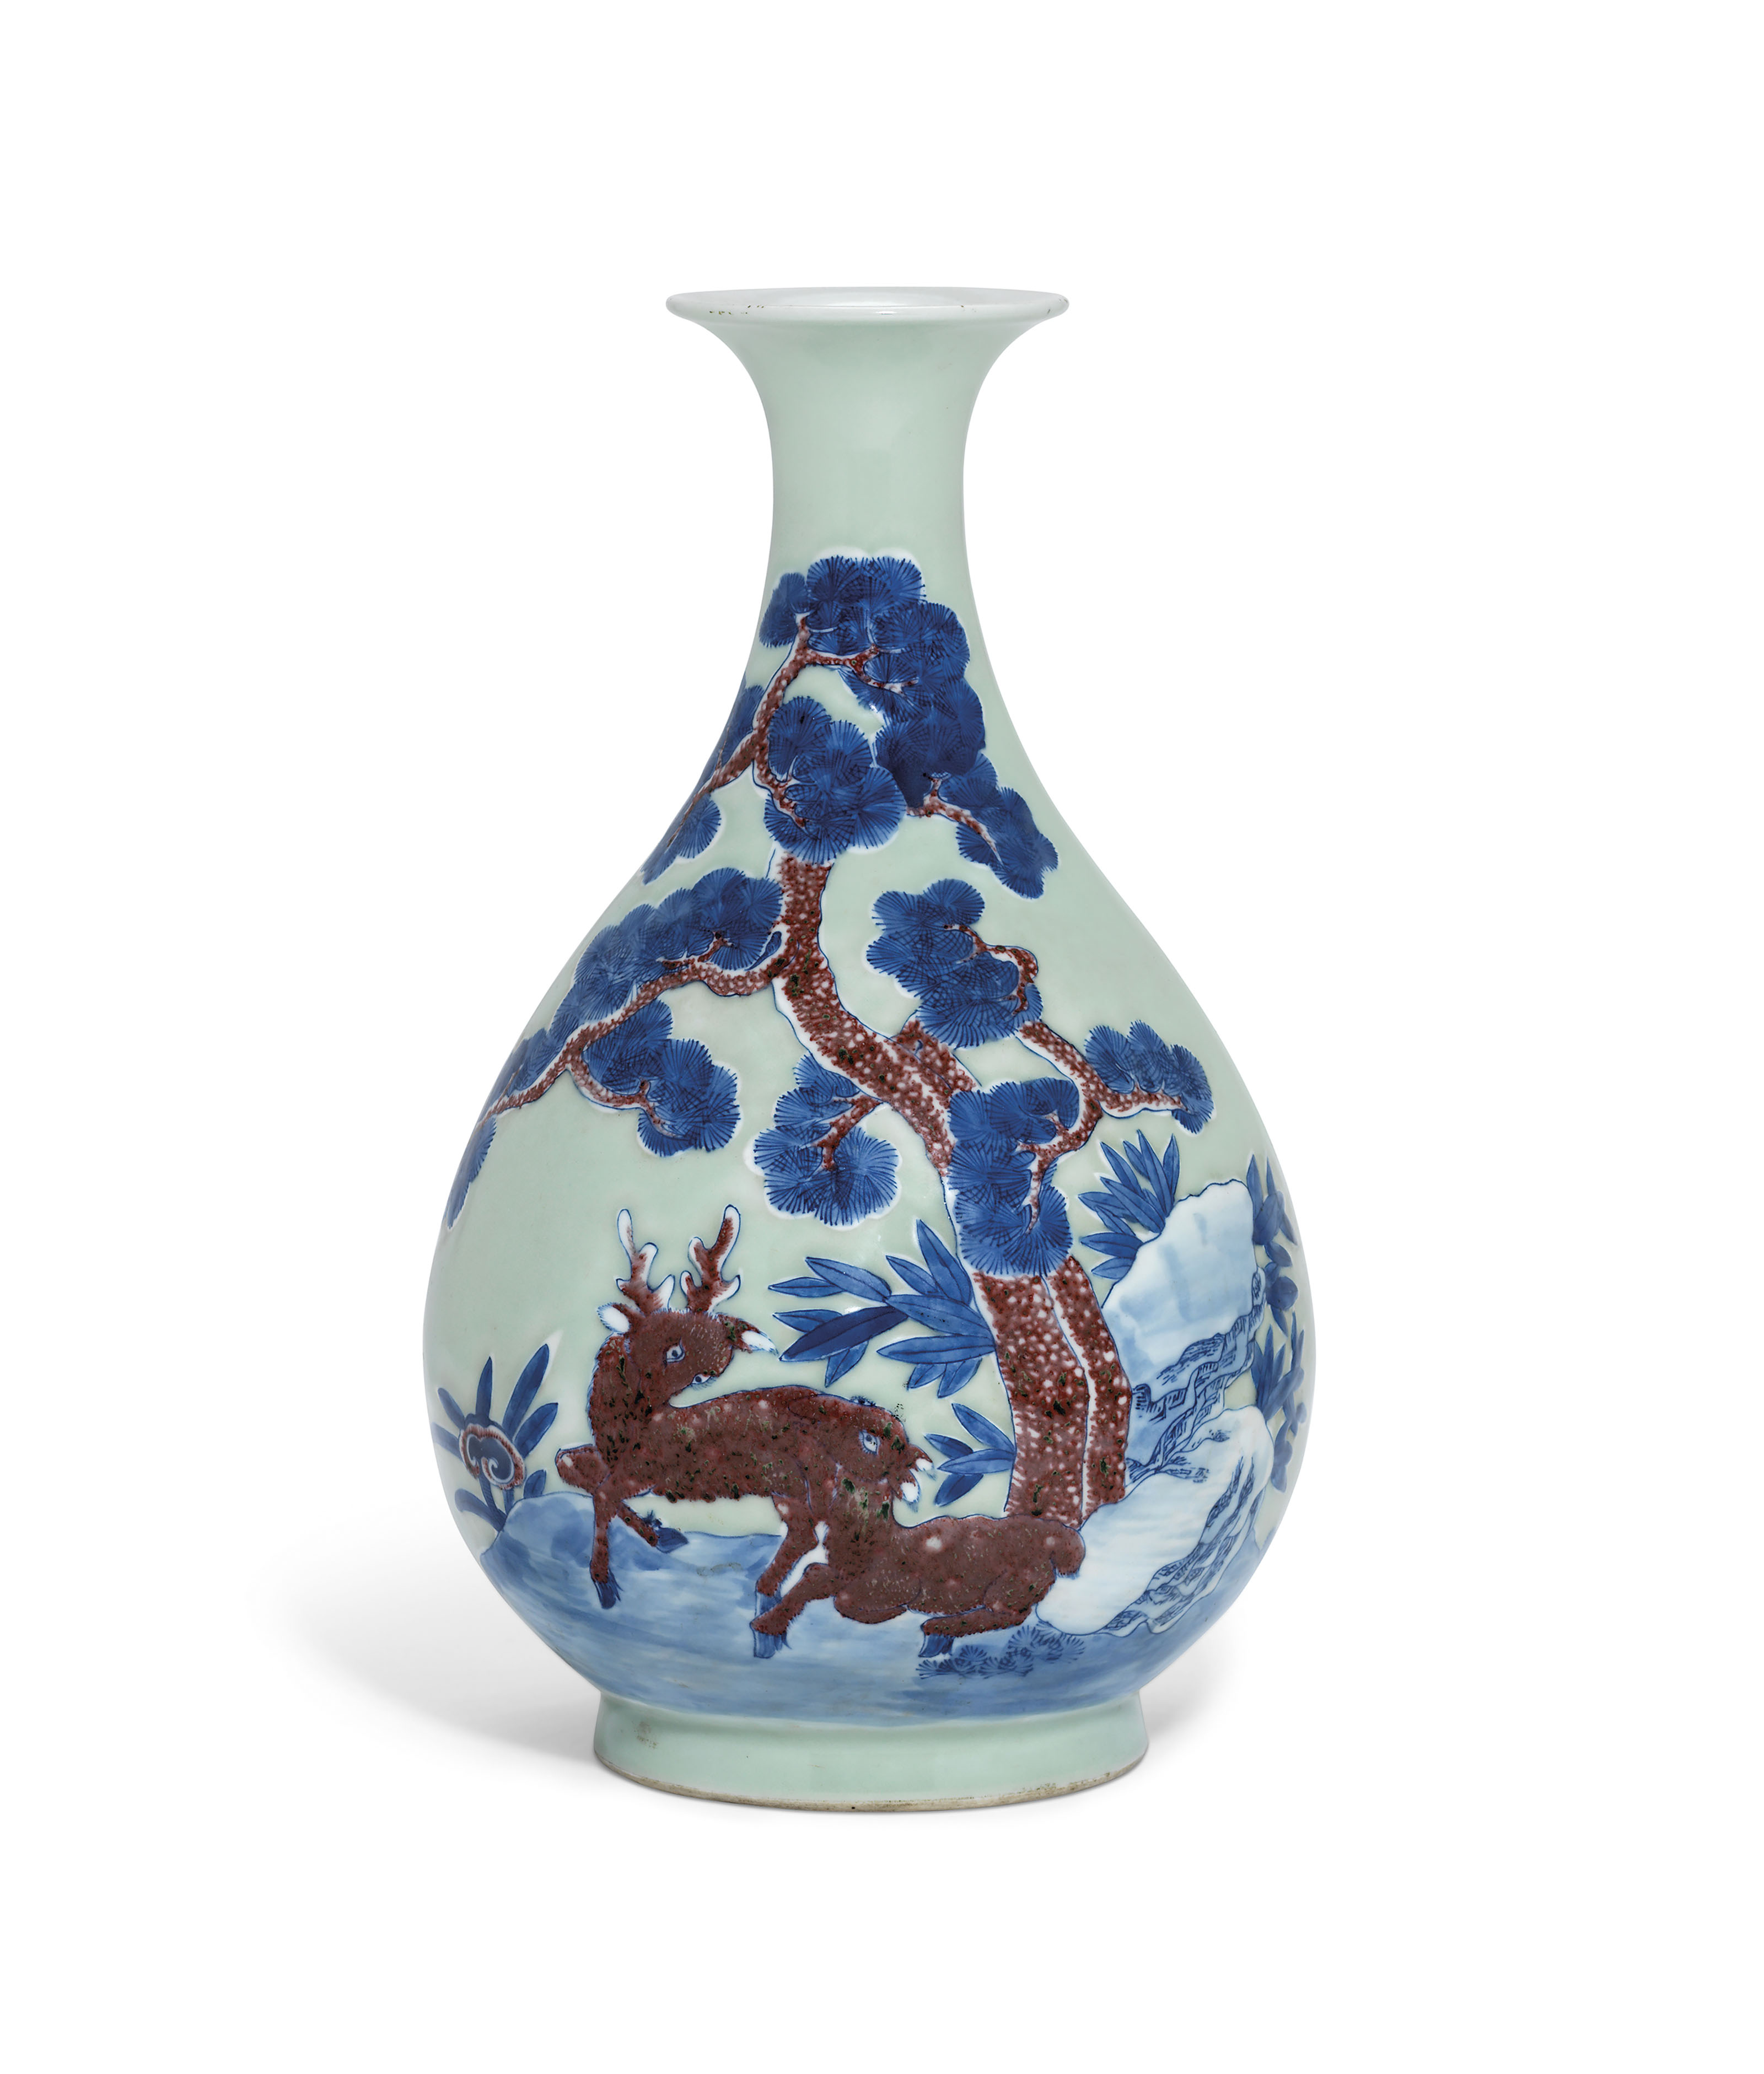 A CELADON-GROUND UNDERGLAZE BLUE AND COPPER RED-DECORATED PEAR-SHAPED VASE...